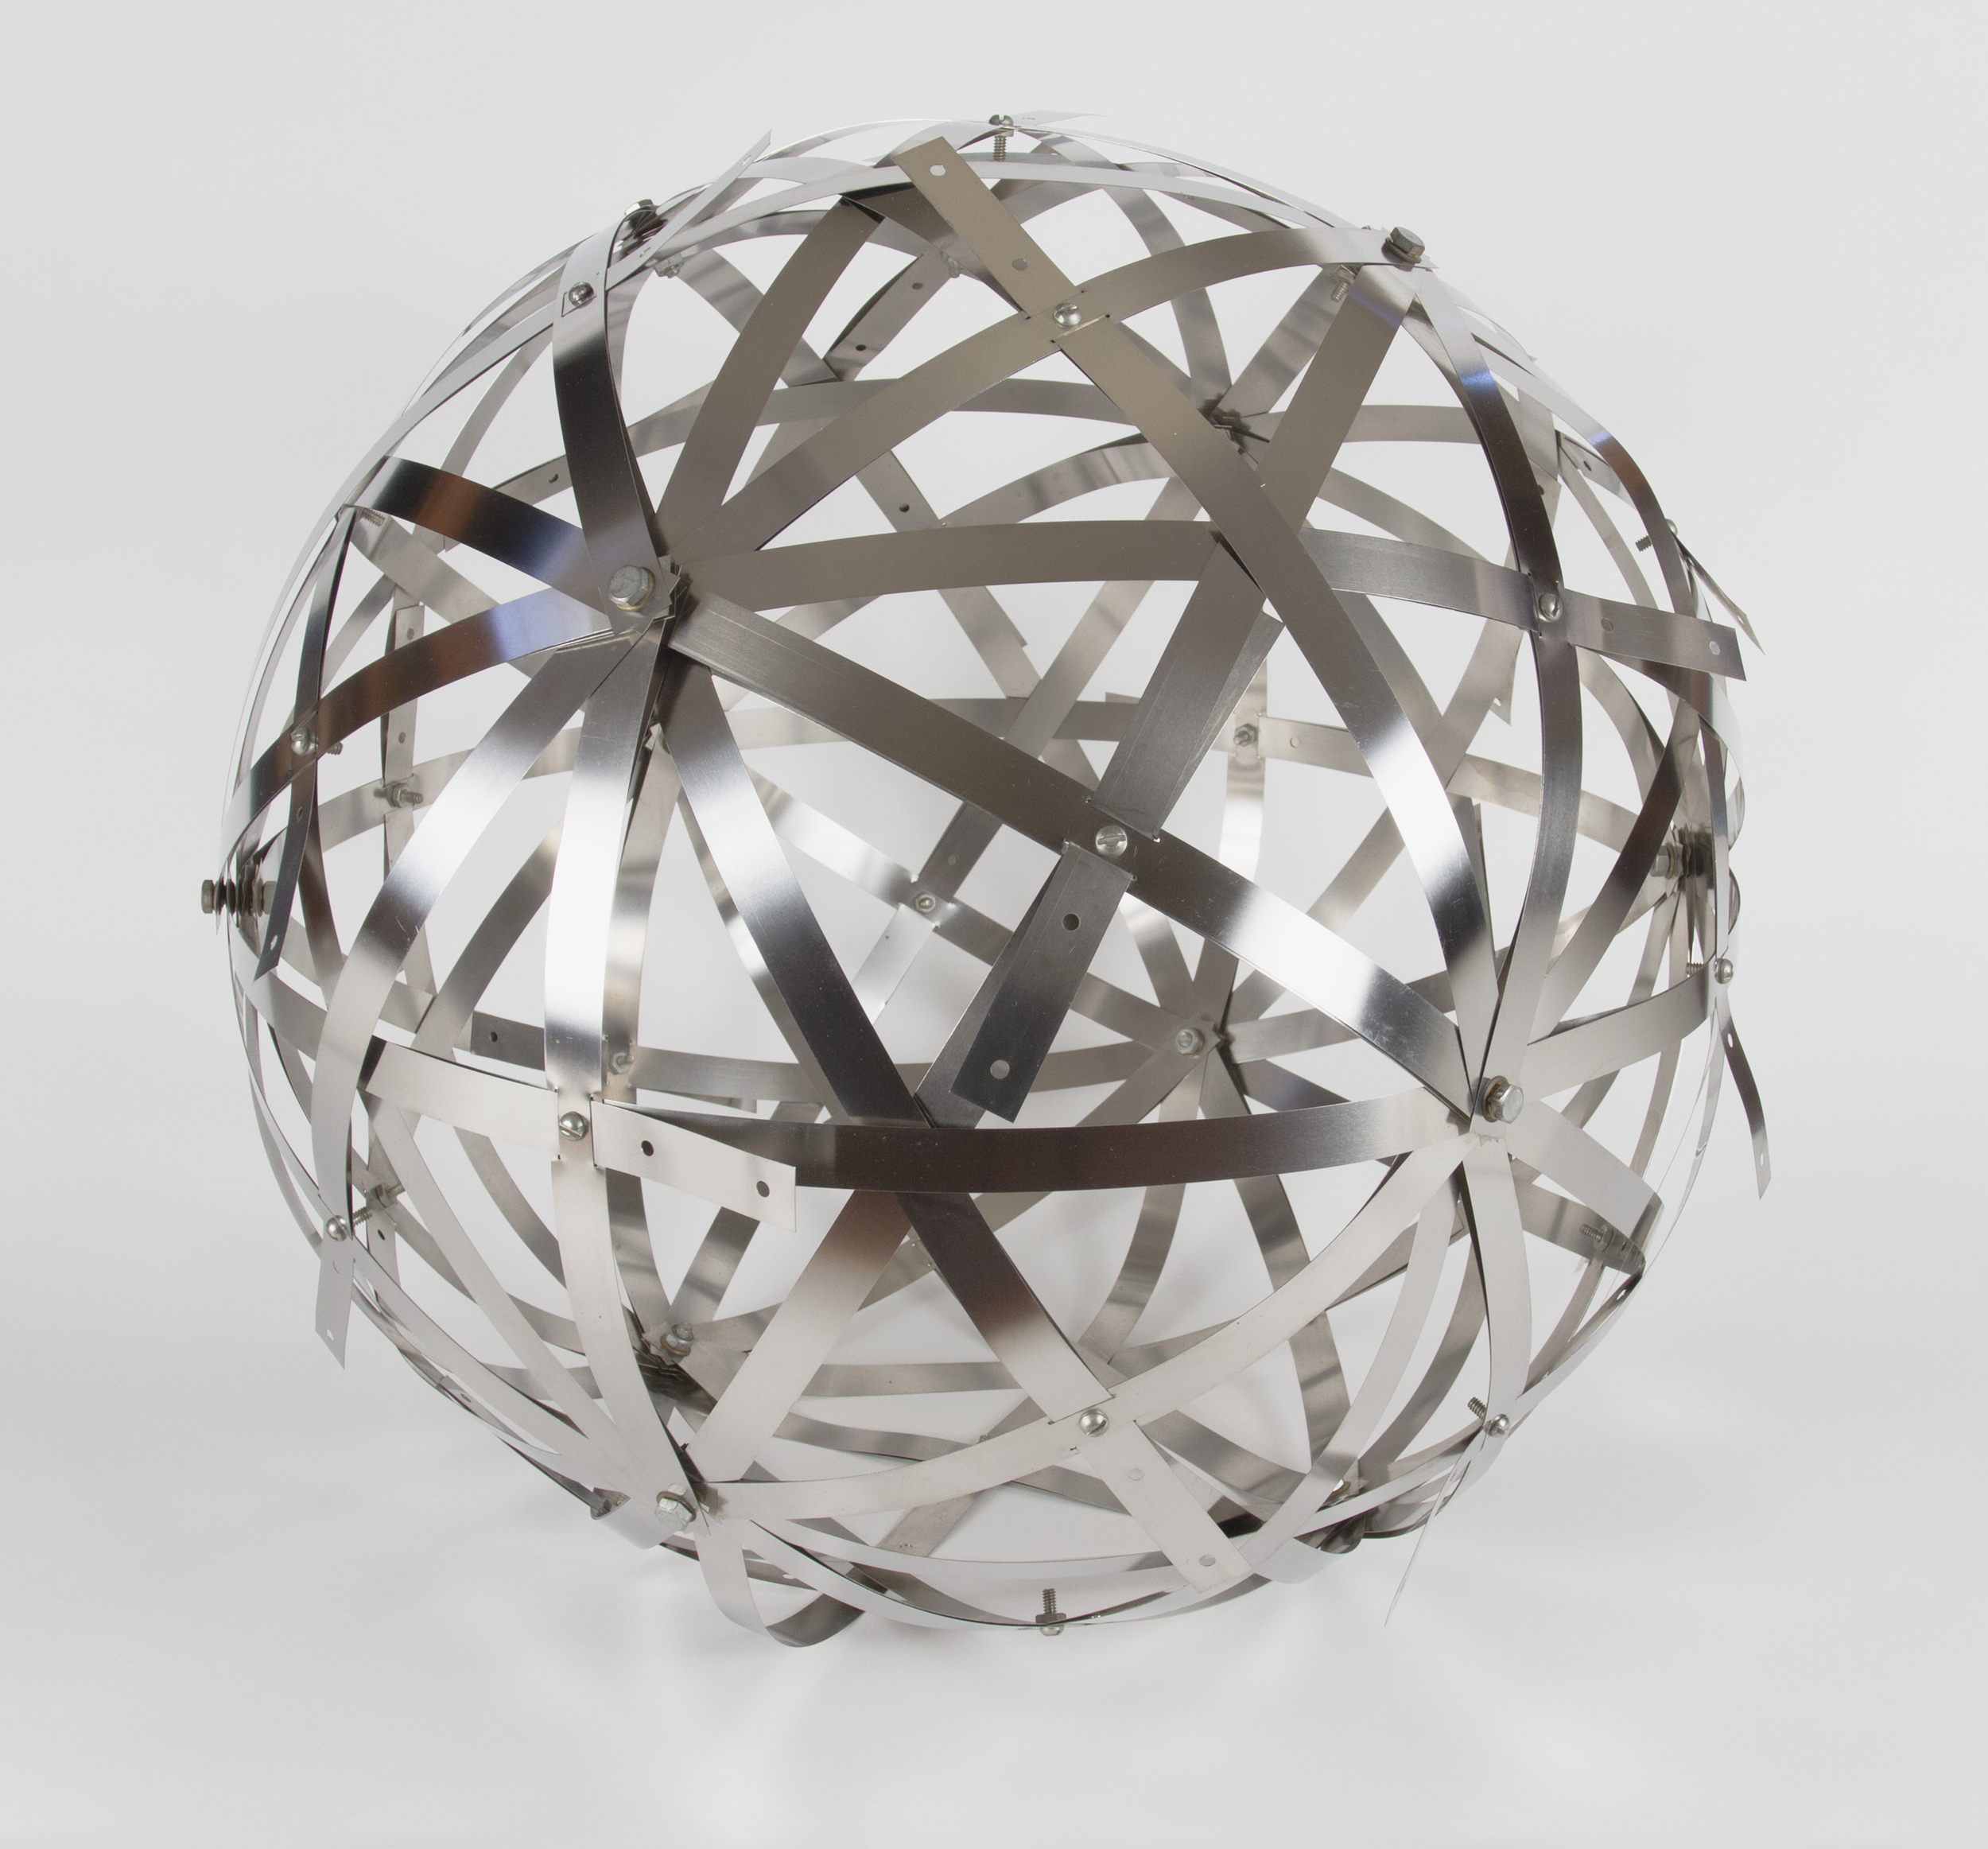 Art by Buckminster Fuller for the Boston ICA